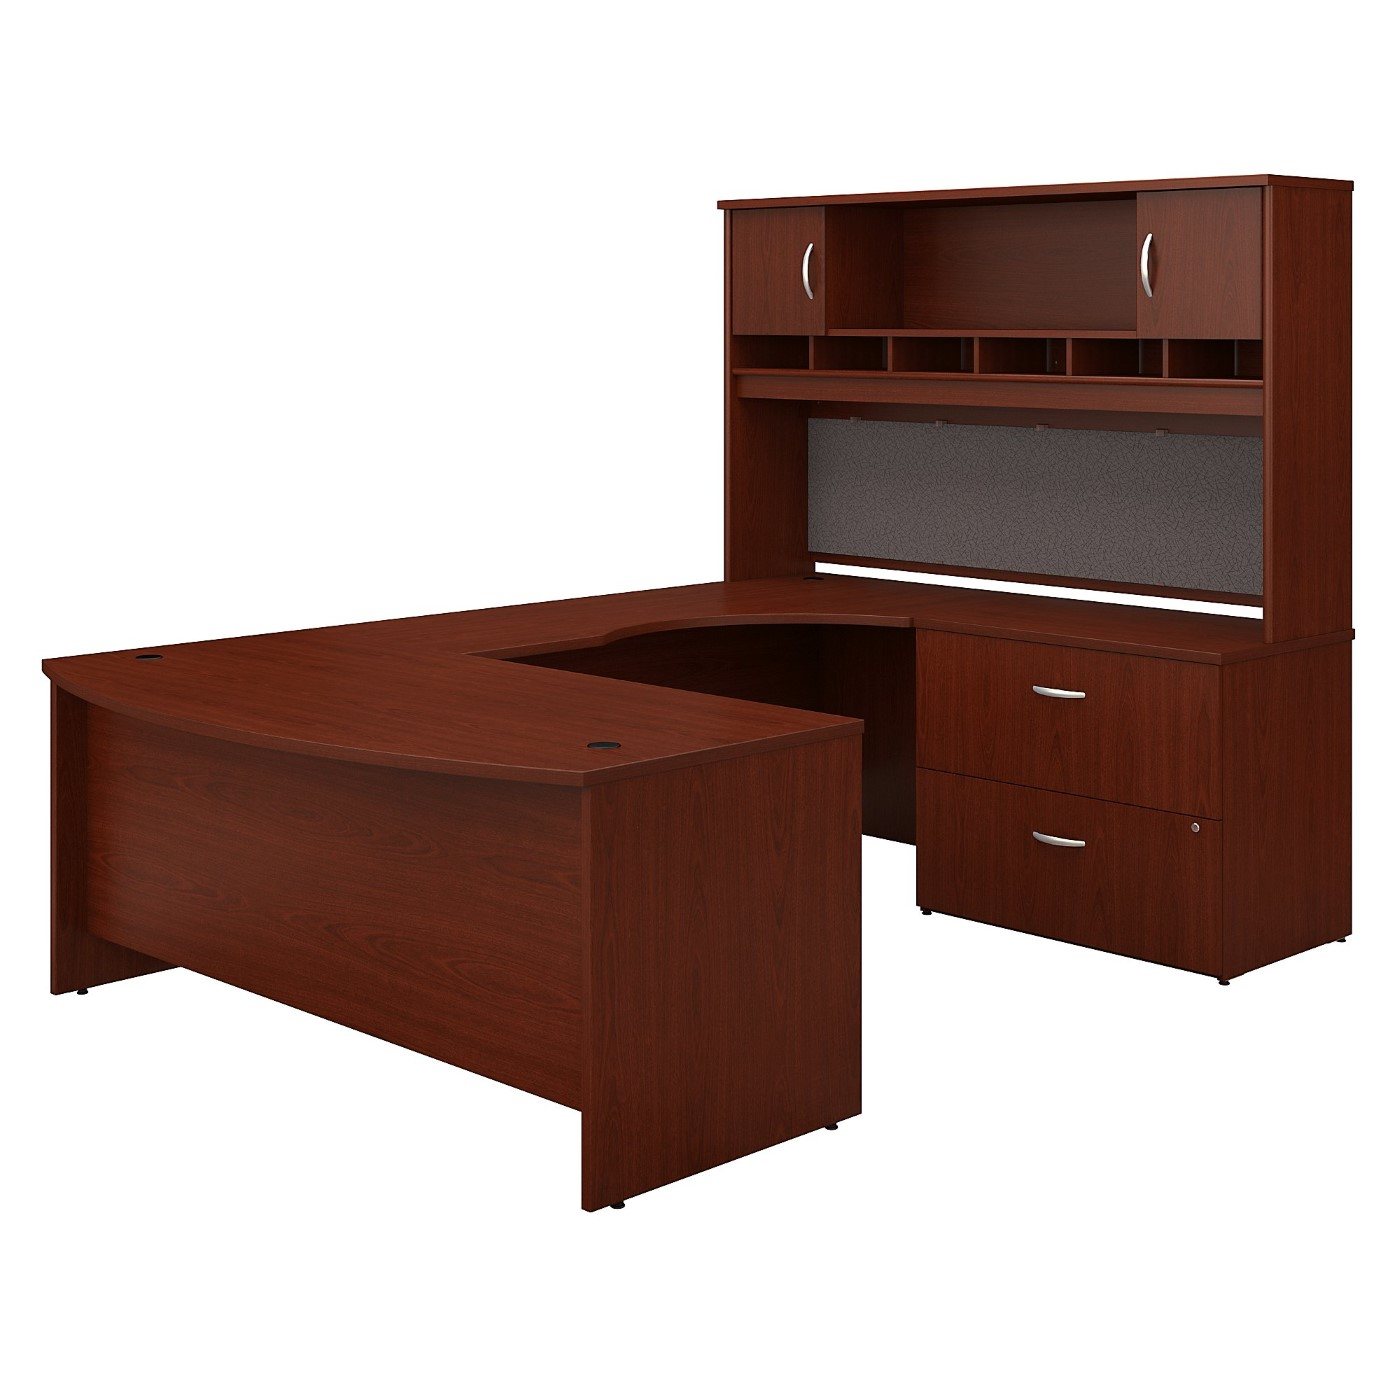 BUSH BUSINESS FURNITURE SERIES C 72W RIGHT HANDED BOW FRONT U SHAPED DESK WITH HUTCH AND STORAGE. FREE SHIPPING